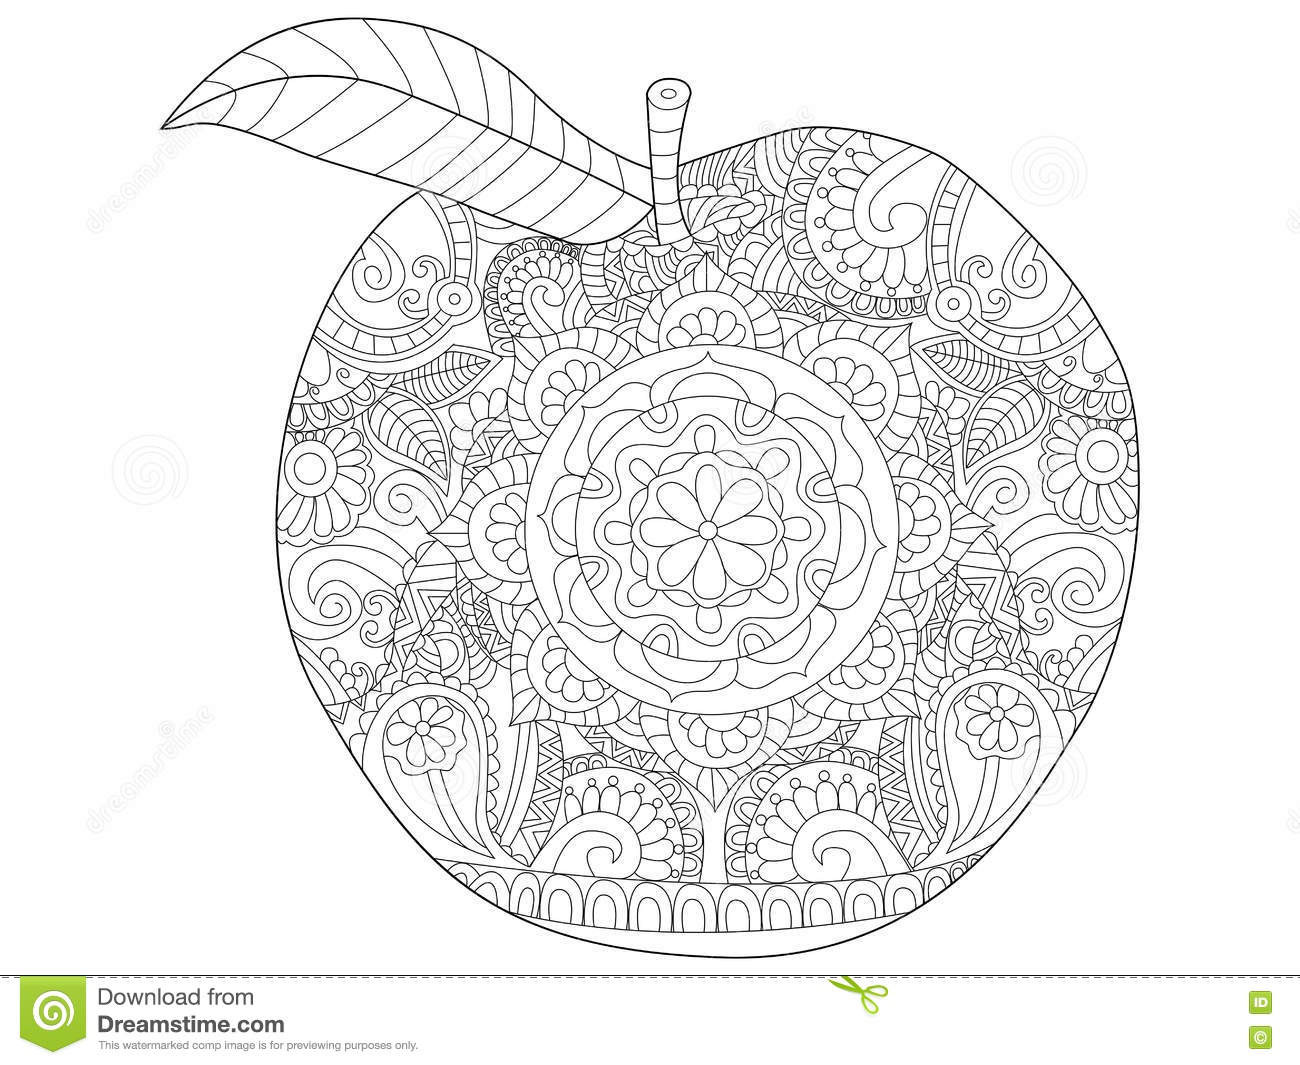 Best ideas about Fruit Coloring Pages For Adults . Save or Pin Apple Fruit Coloring Vector For Adults Stock Vector Now.